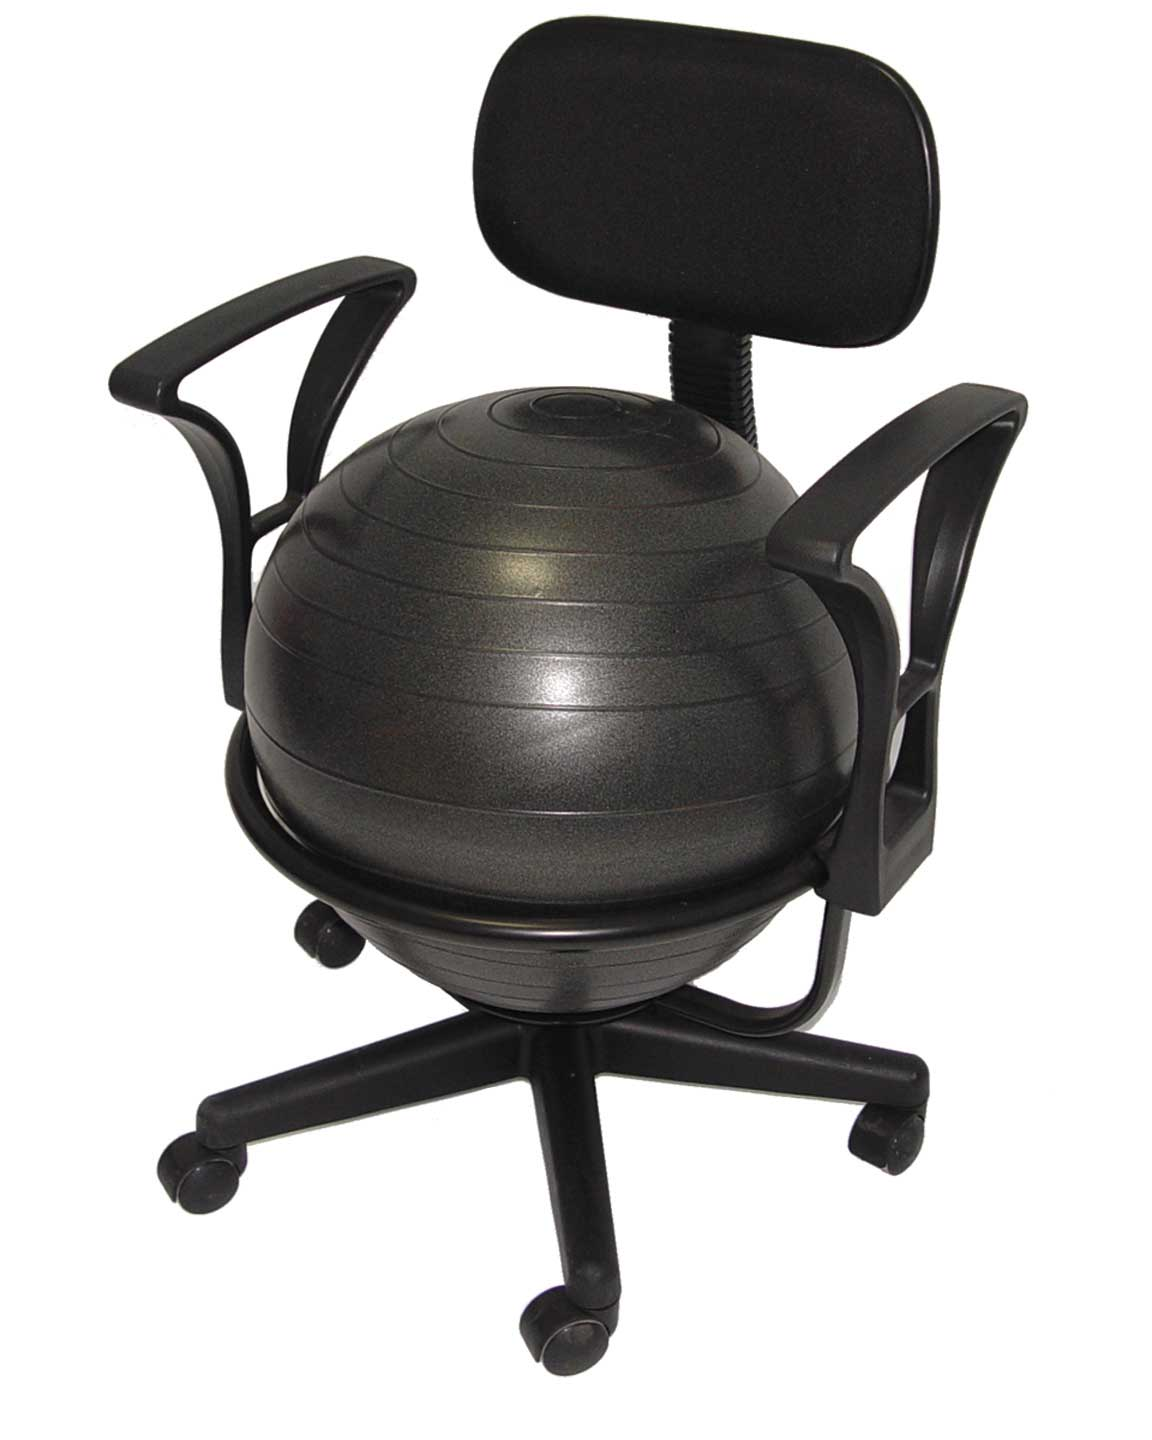 exercise ball chair reviews  Office Furniture